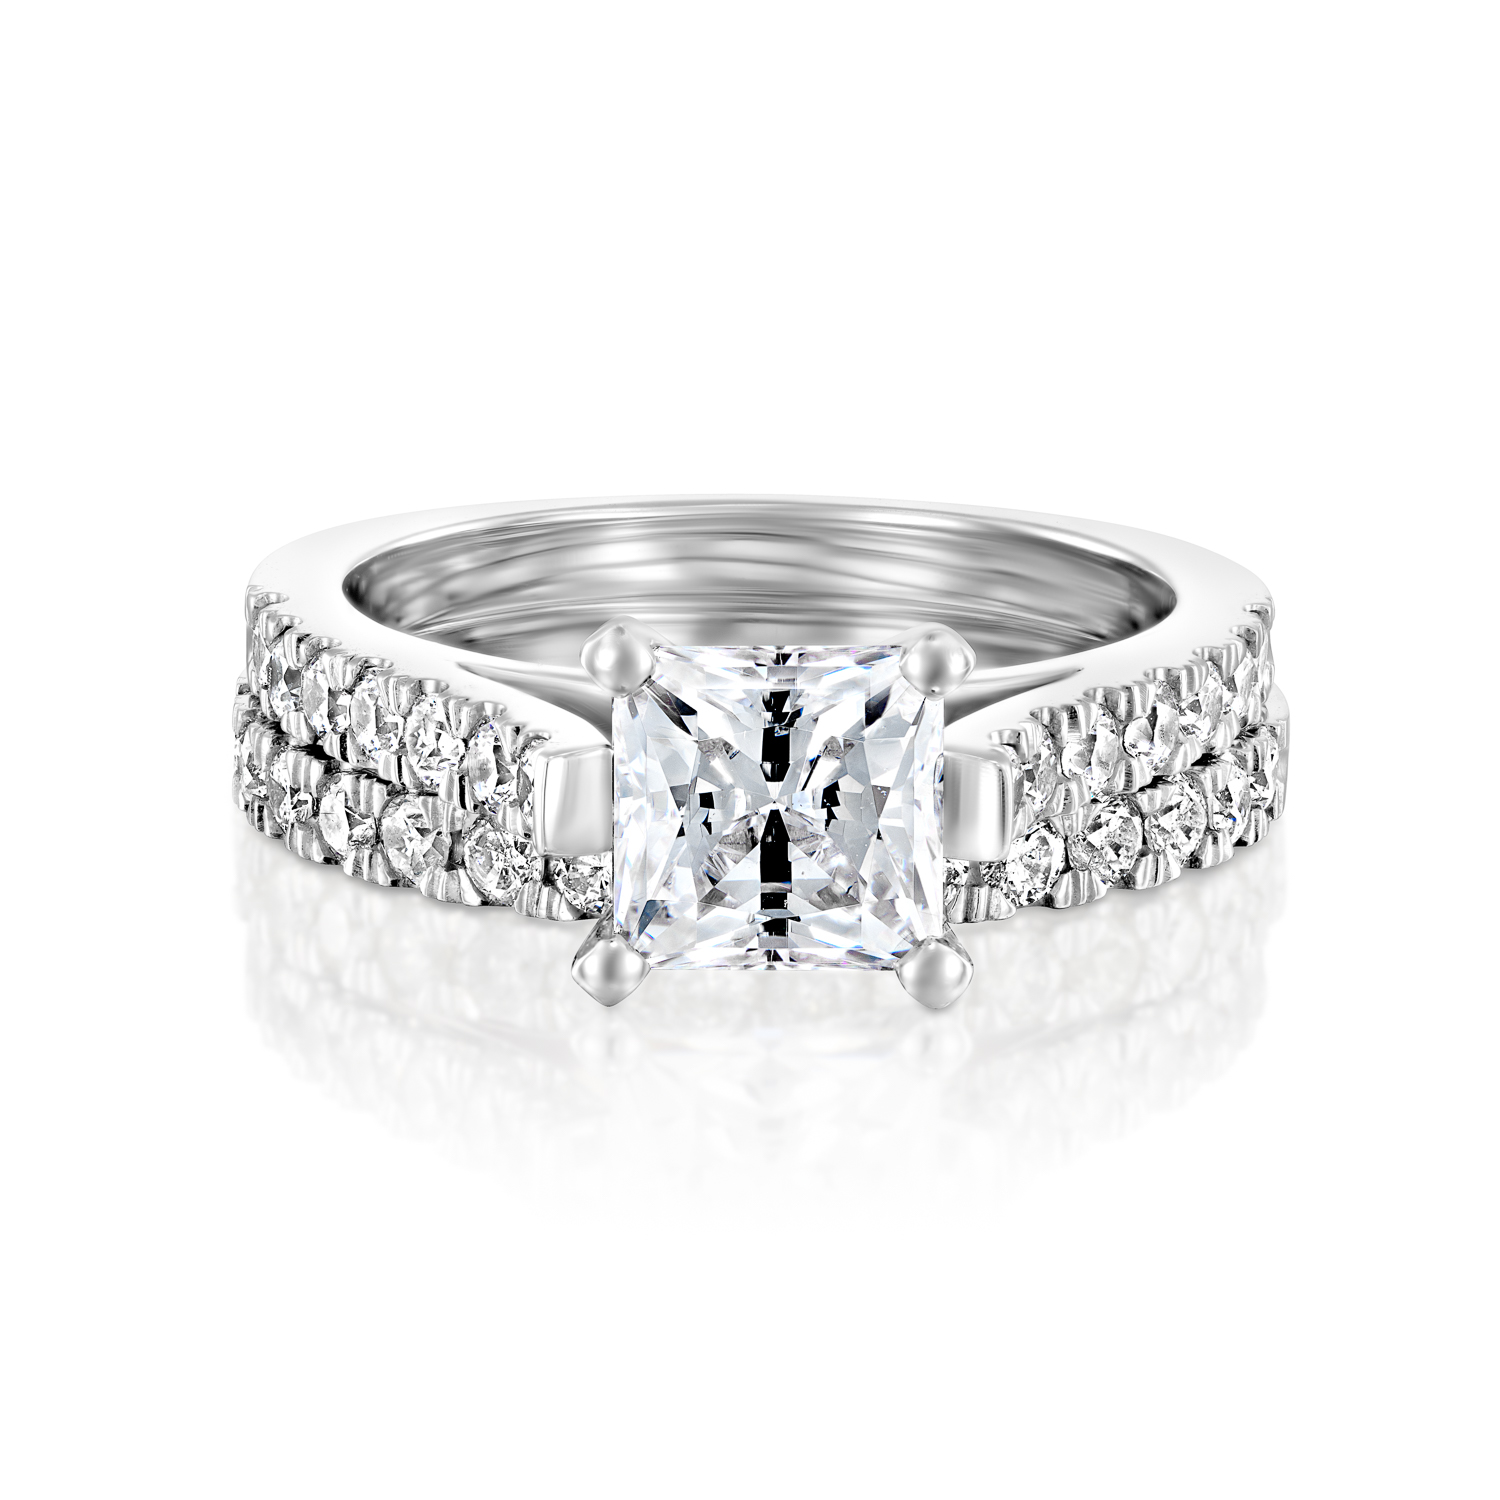 1.25 CT D/VS ENHANCED PRINCESS DIAMOND ENGAGEMENT RING SET ...